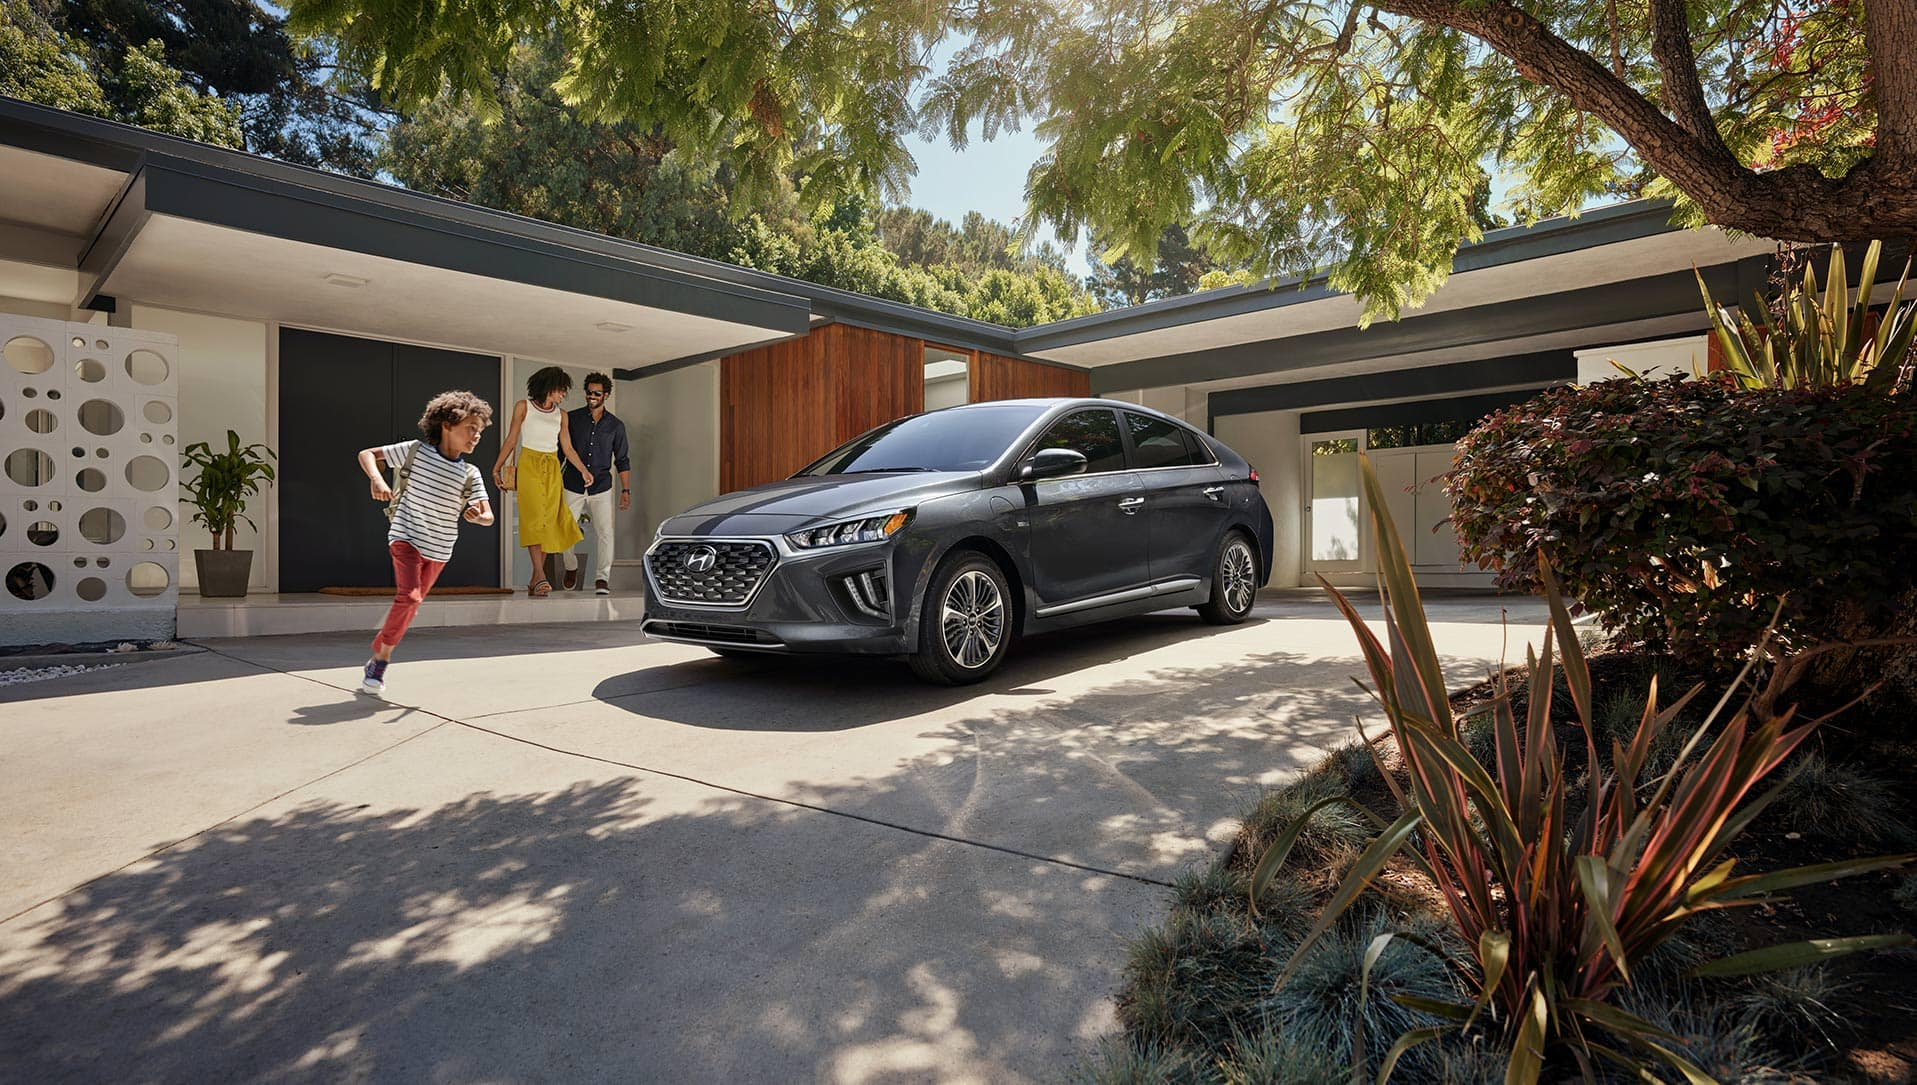 Boch Hyundai is a Luxury Car Dealership near Boston MD | Grey MY20 Hyundai Ioniq parked in driveway with family coming outside of house to get inside